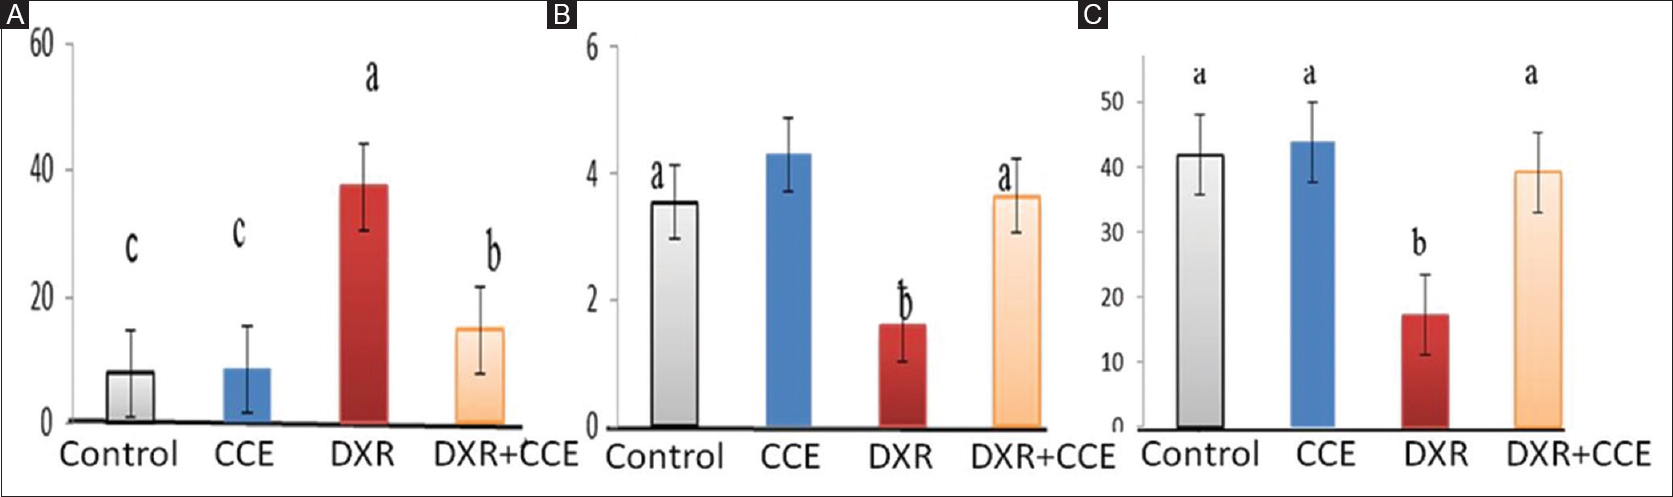 Figure 2: Effect of administration of <i>Calligonum comosum</i> extract and doxorubicin on oxidative status. Levels of serum malondialdehyde: (a) reduced glutathione (Reduced glutathione: [b] and super oxide dismutase: [c] in different experimental animal groups). Data are presented as mean ± standard error.<sup>a, b</sup>Superscripts indicate significant difference (<i>P</i> < 0.05)